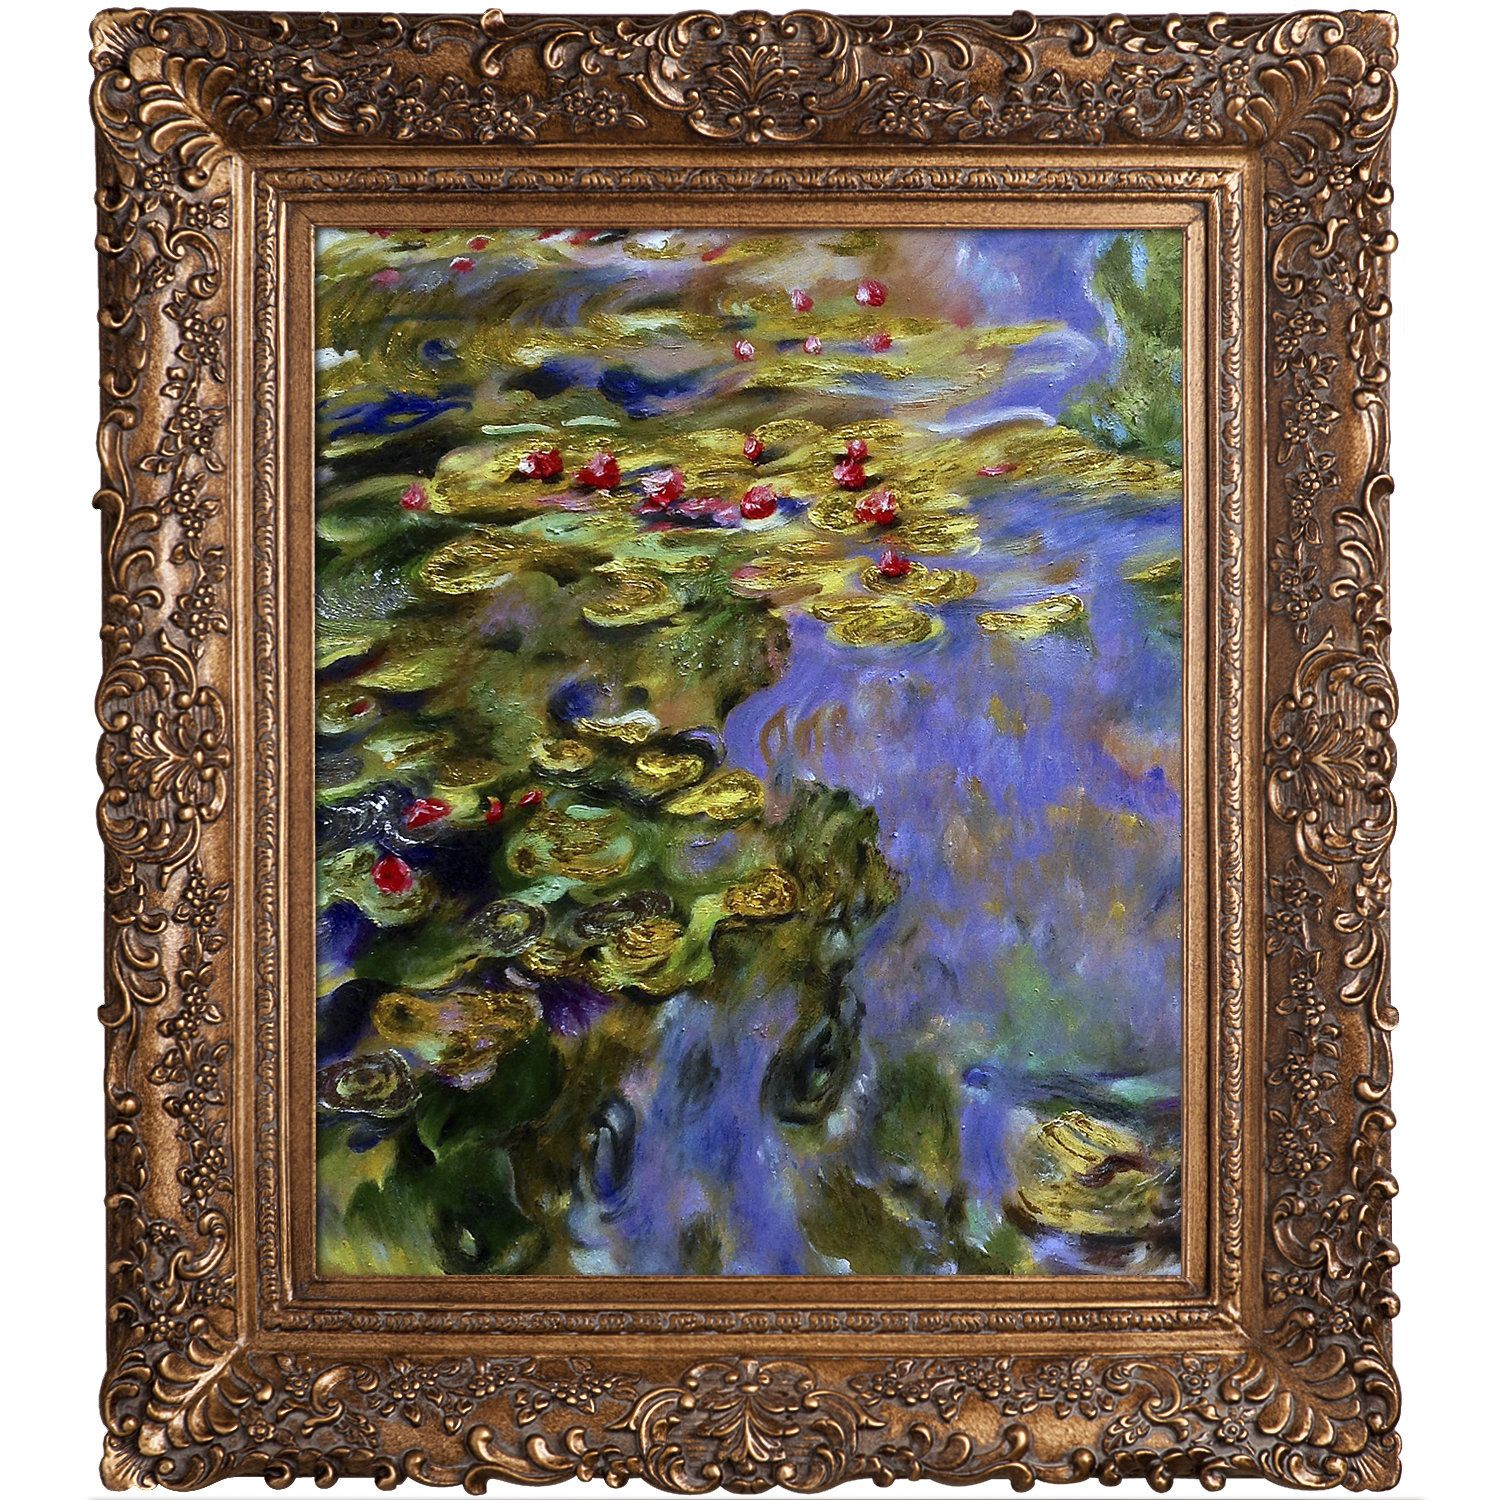 13fb96c5efd4 La Pastiche Water Lilies Metallic Embellished Artwork By Claude Monet with  Burgeon Gold Frame